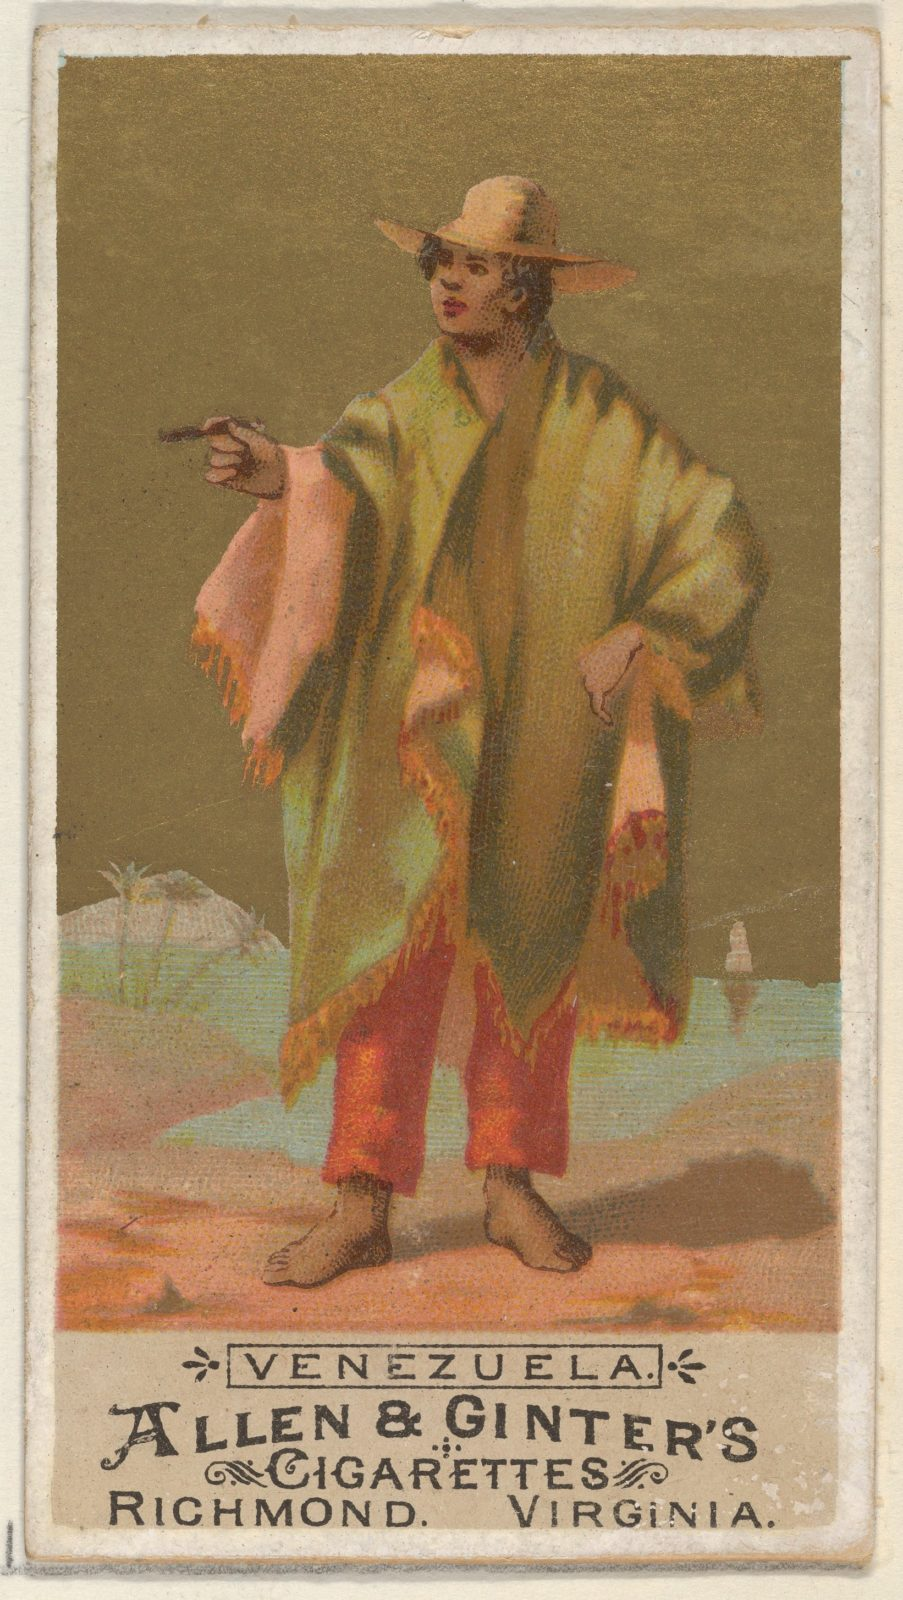 Venezuela, from the Natives in Costume series (N16) for Allen & Ginter Cigarettes Brands